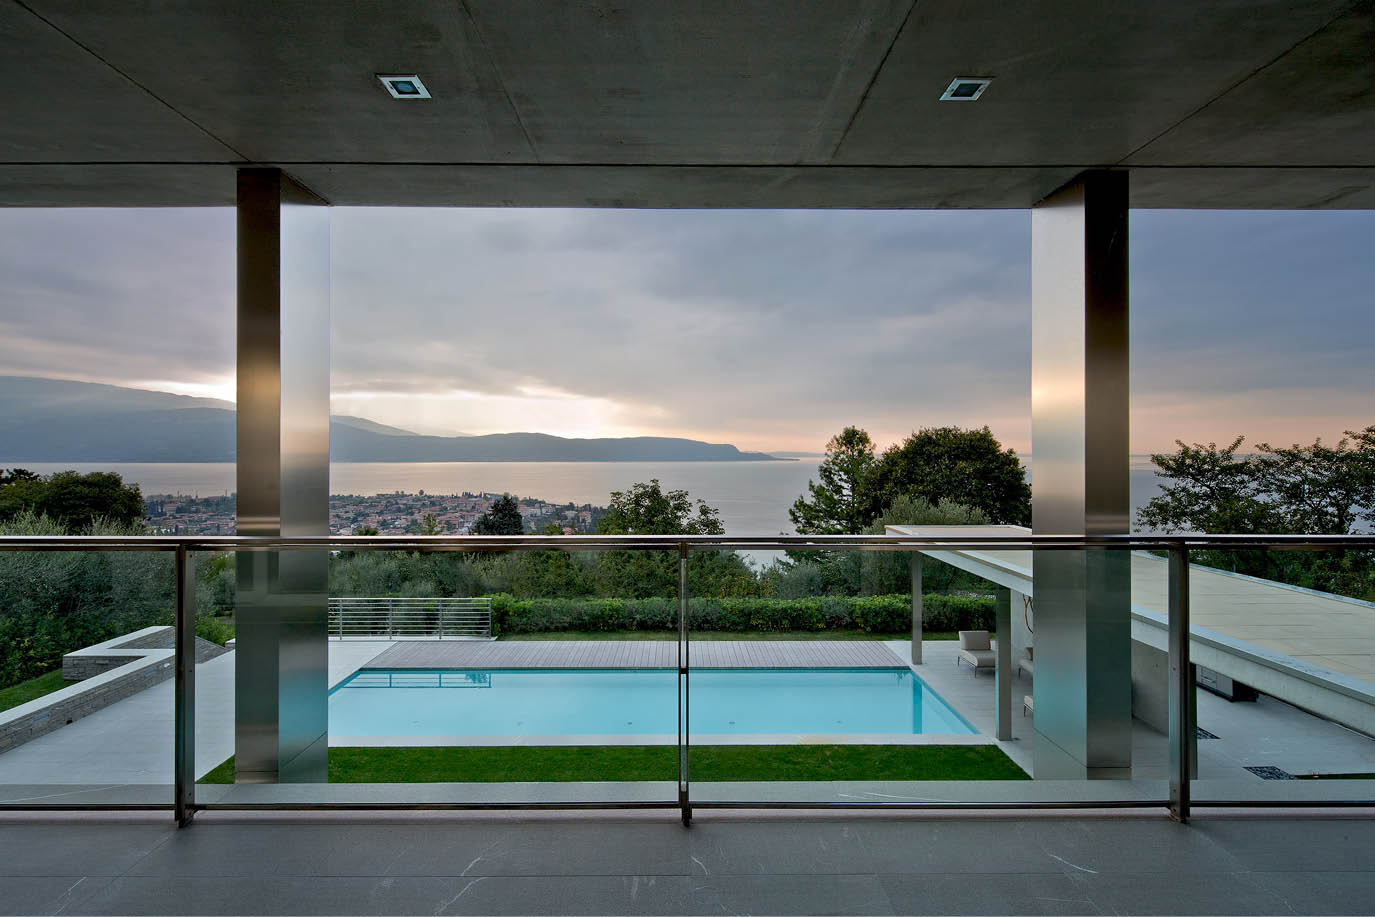 high end residentla refurbishment contractors work of a modern villa facing the lake